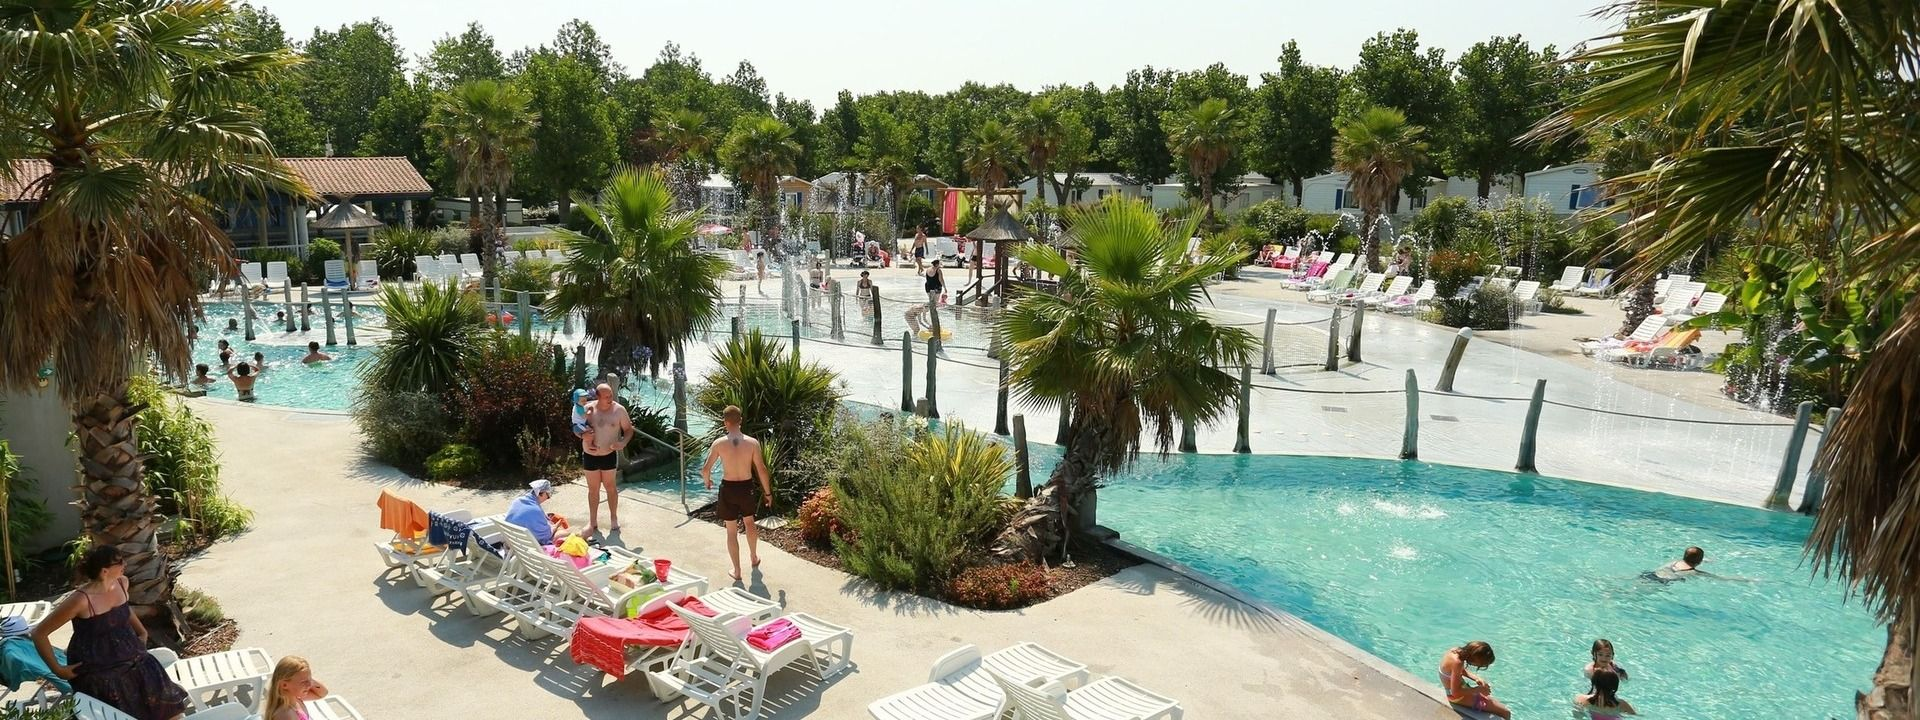 Camping pyr n es atlantiques camping oyam 4 camping for Camping avec piscine pays basque